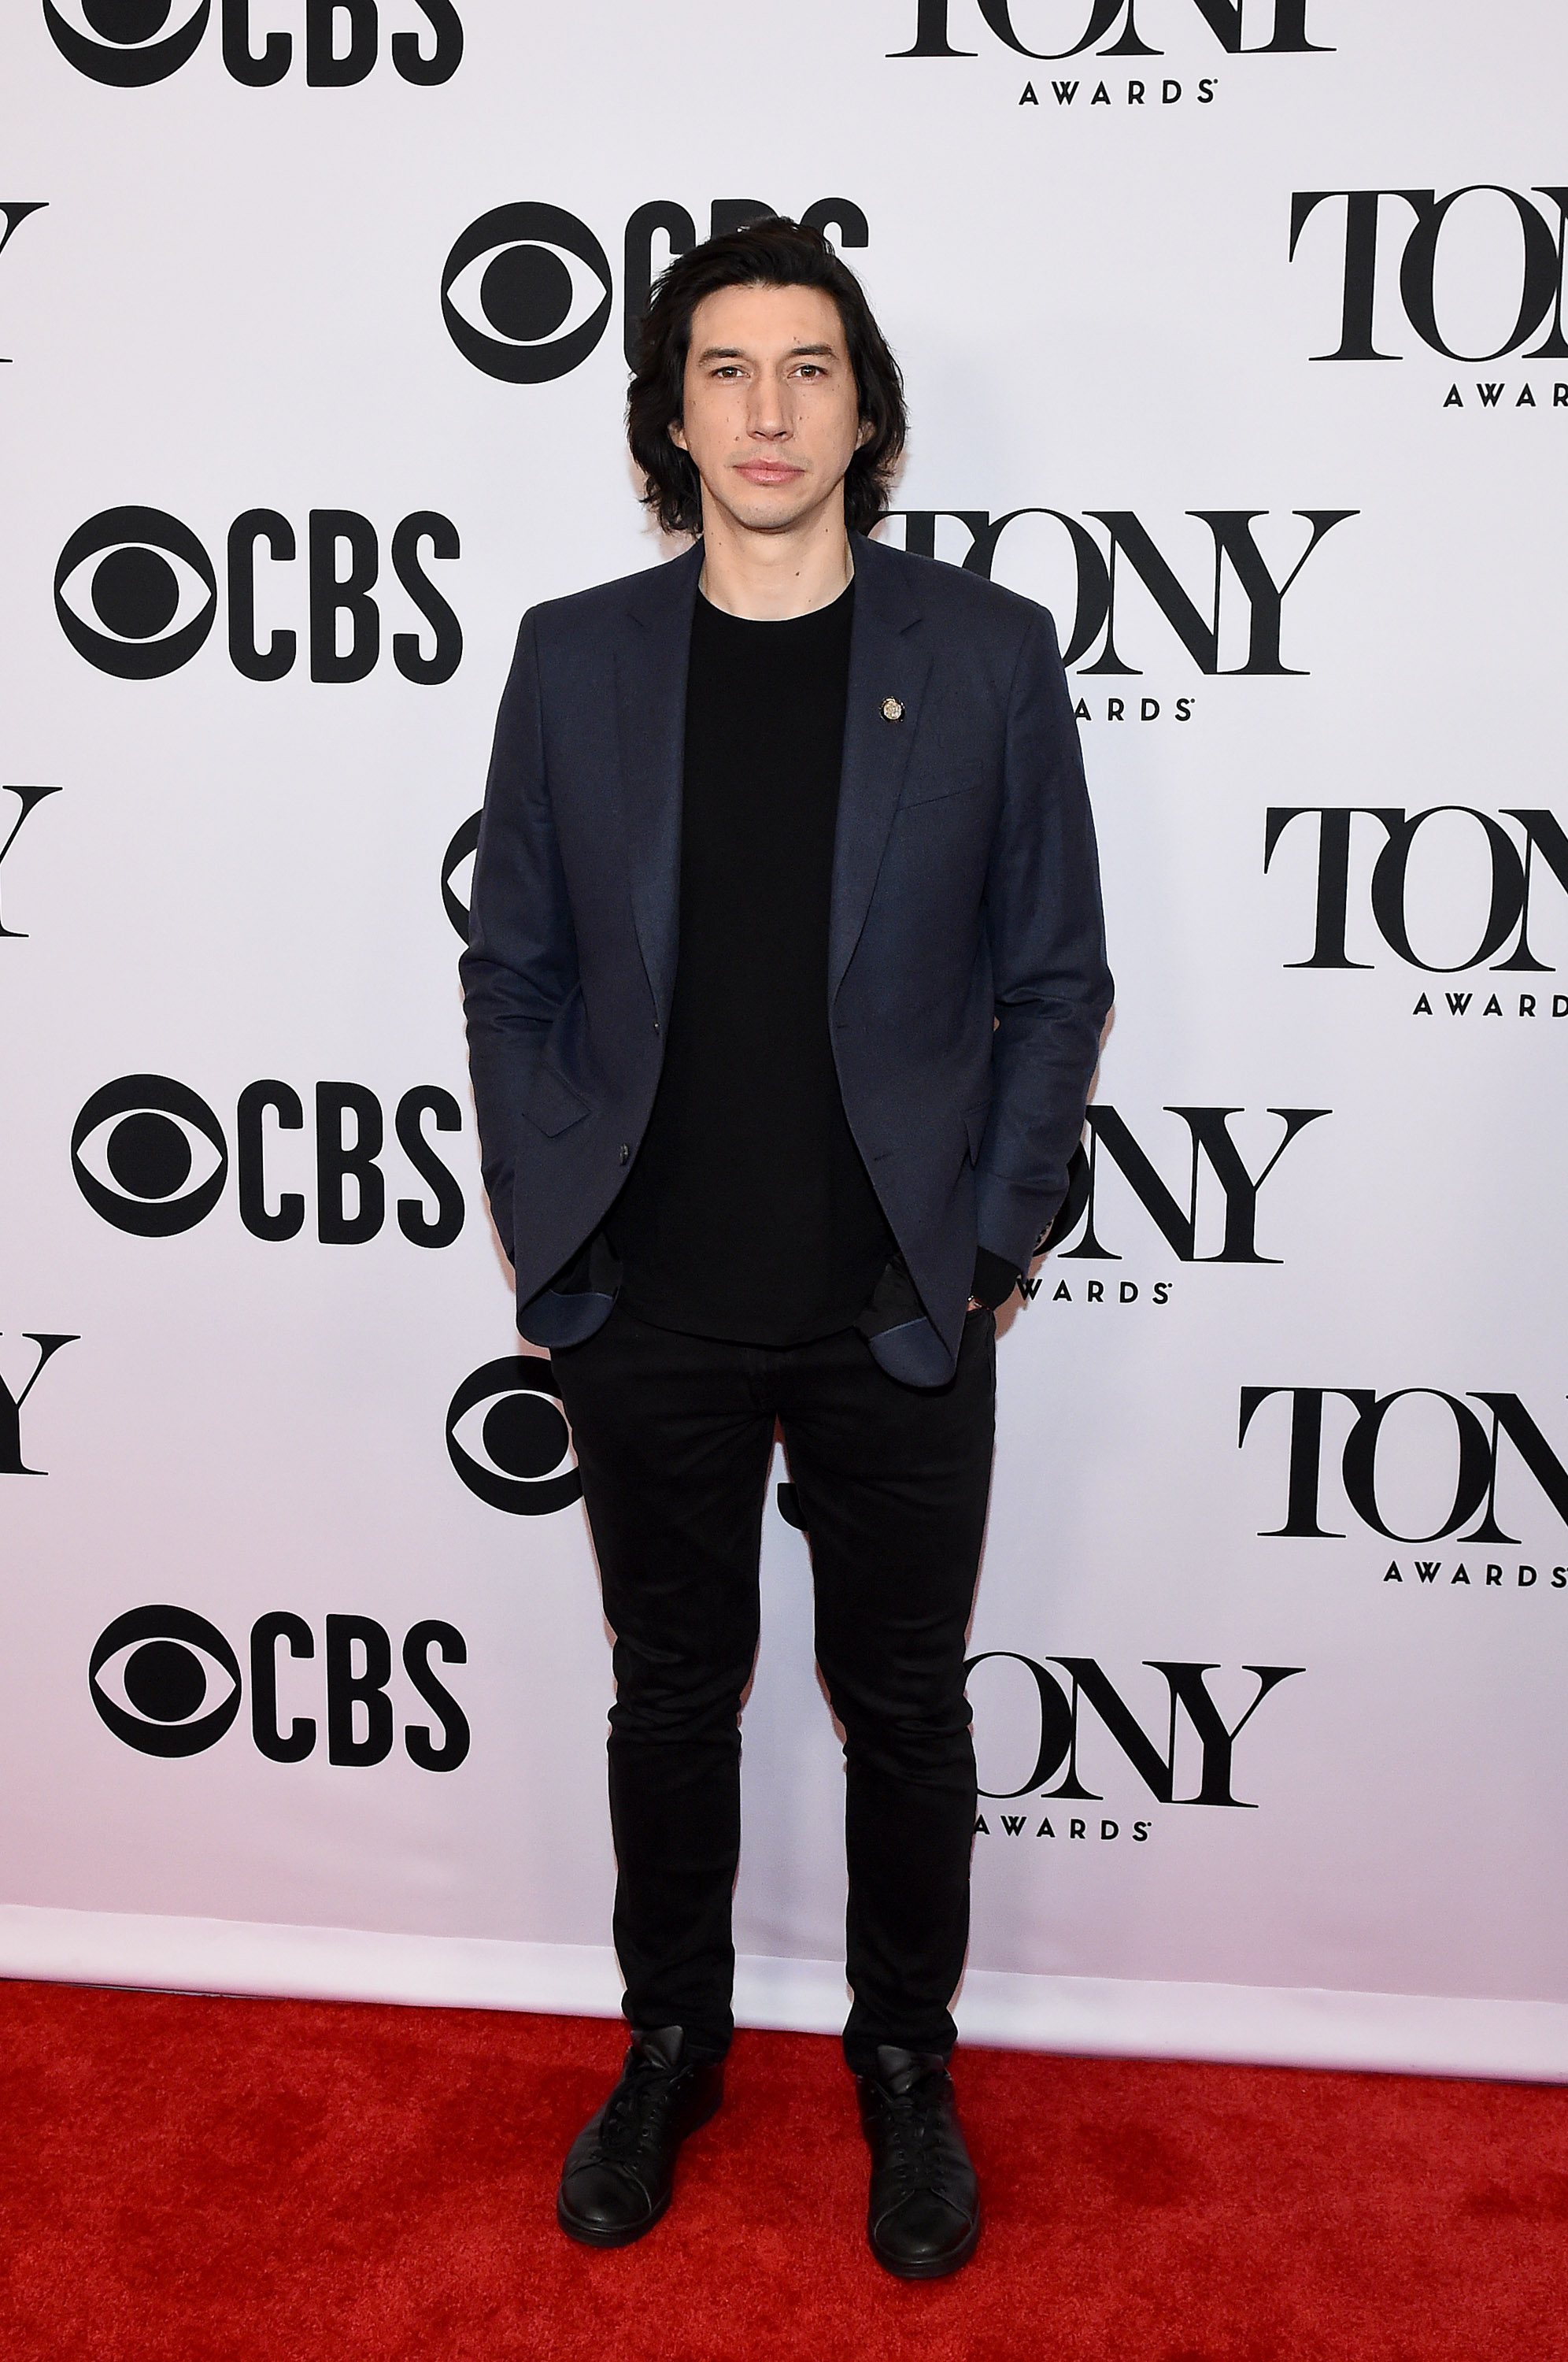 NEW YORK, NEW YORK - MAY 01: Adam Driver attends The 73rd Annual Tony Awards Meet The Nominees Press Day at Sofitel New York on May 01, 2019 in New York City. (Photo by